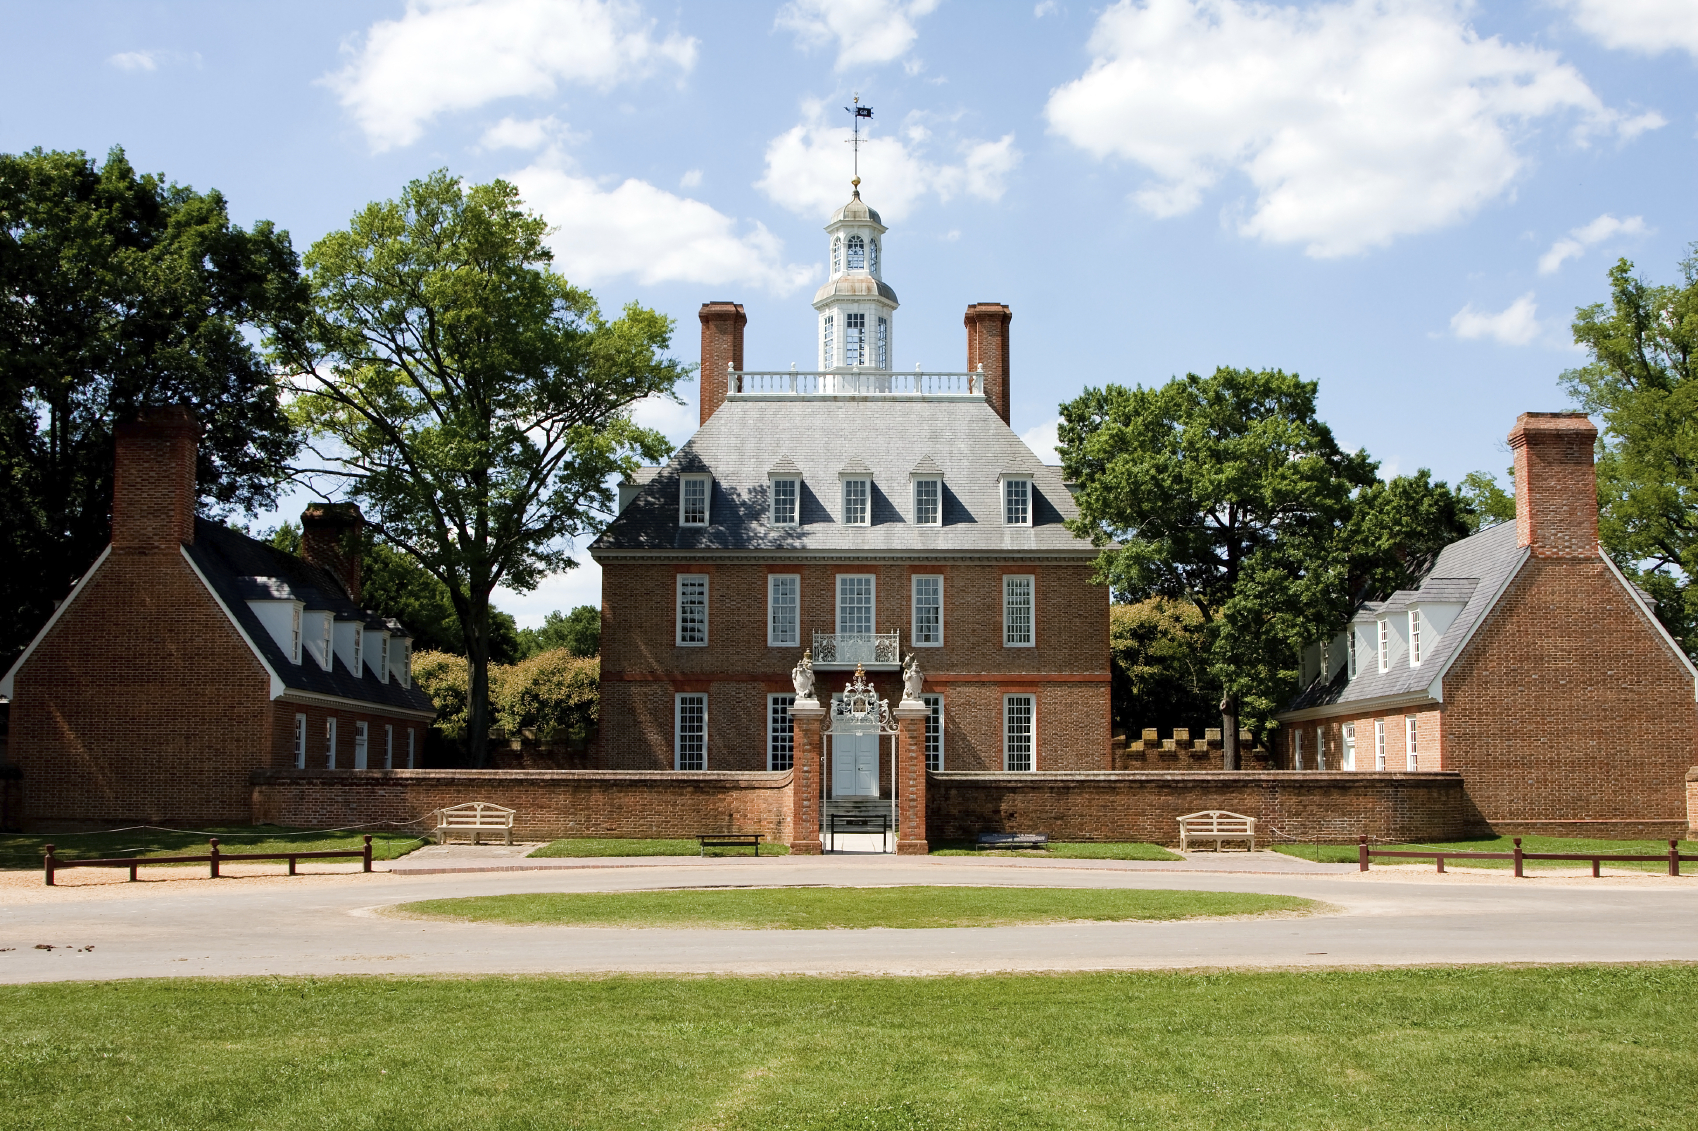 williamsburg, virginia share your itinerary realfamilyrips.com